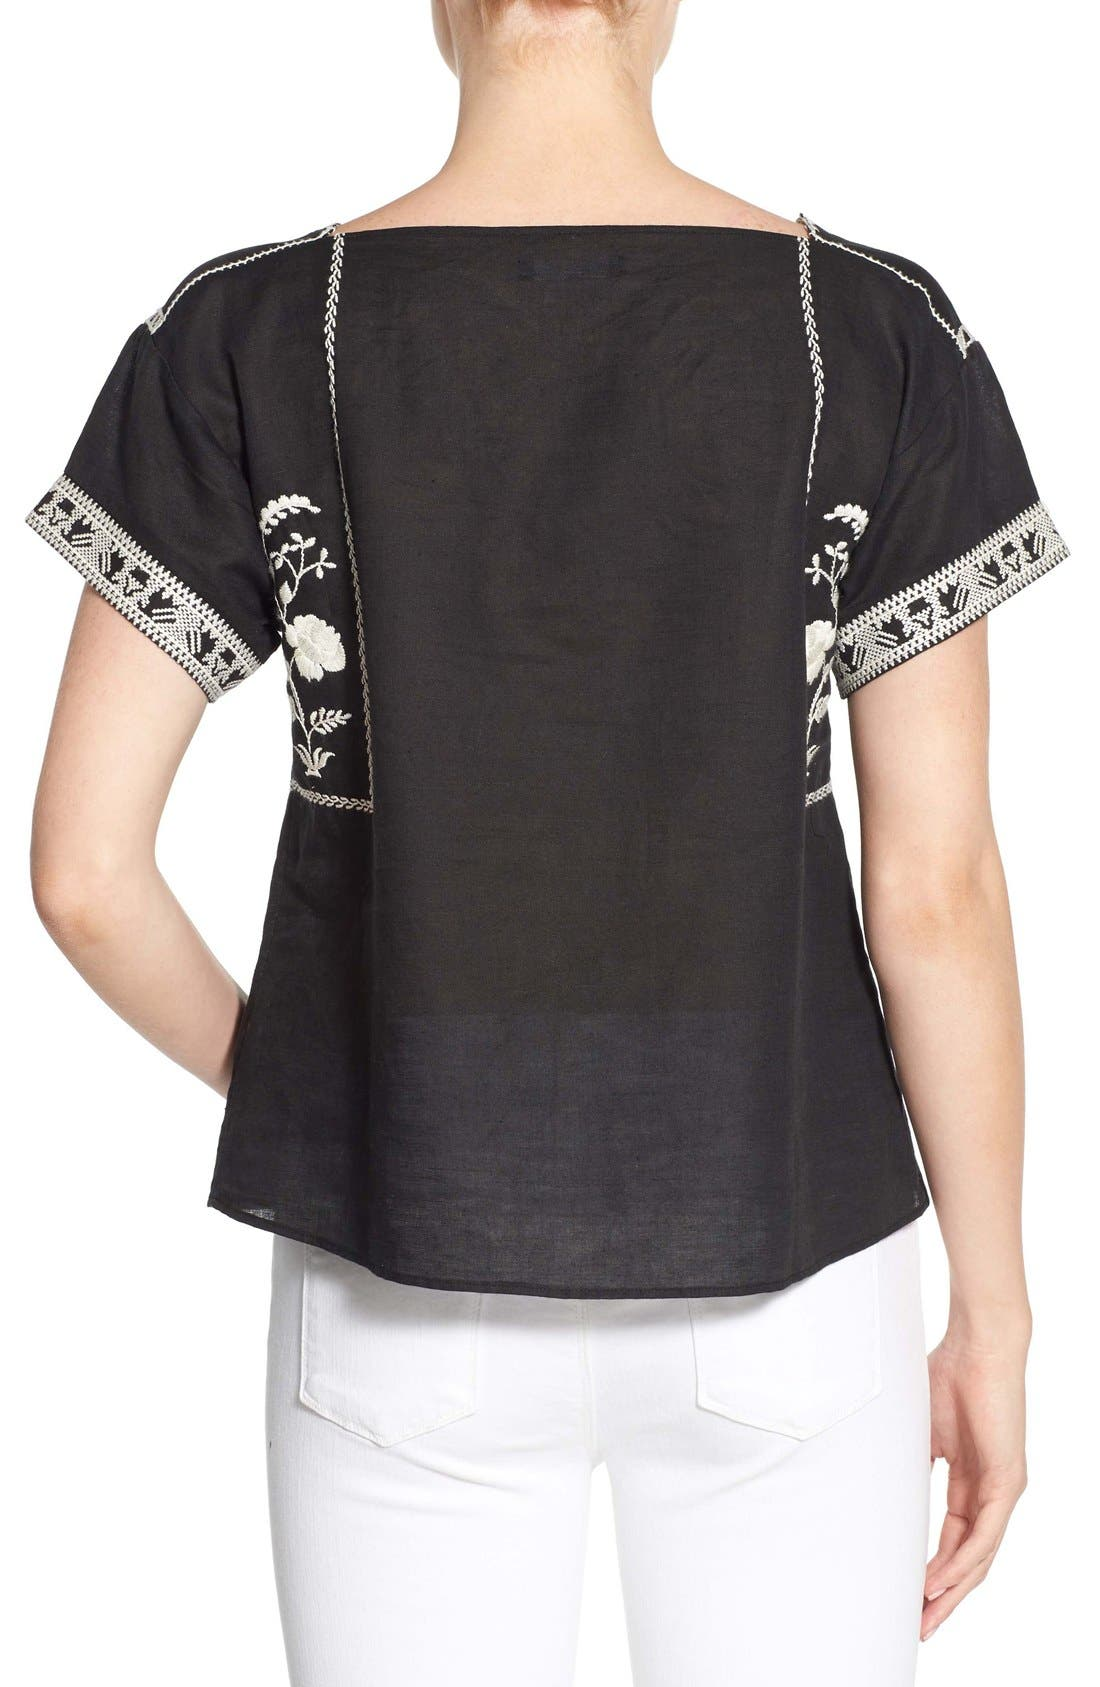 Wildfield Embroidered Top,                             Alternate thumbnail 2, color,                             Classic Black